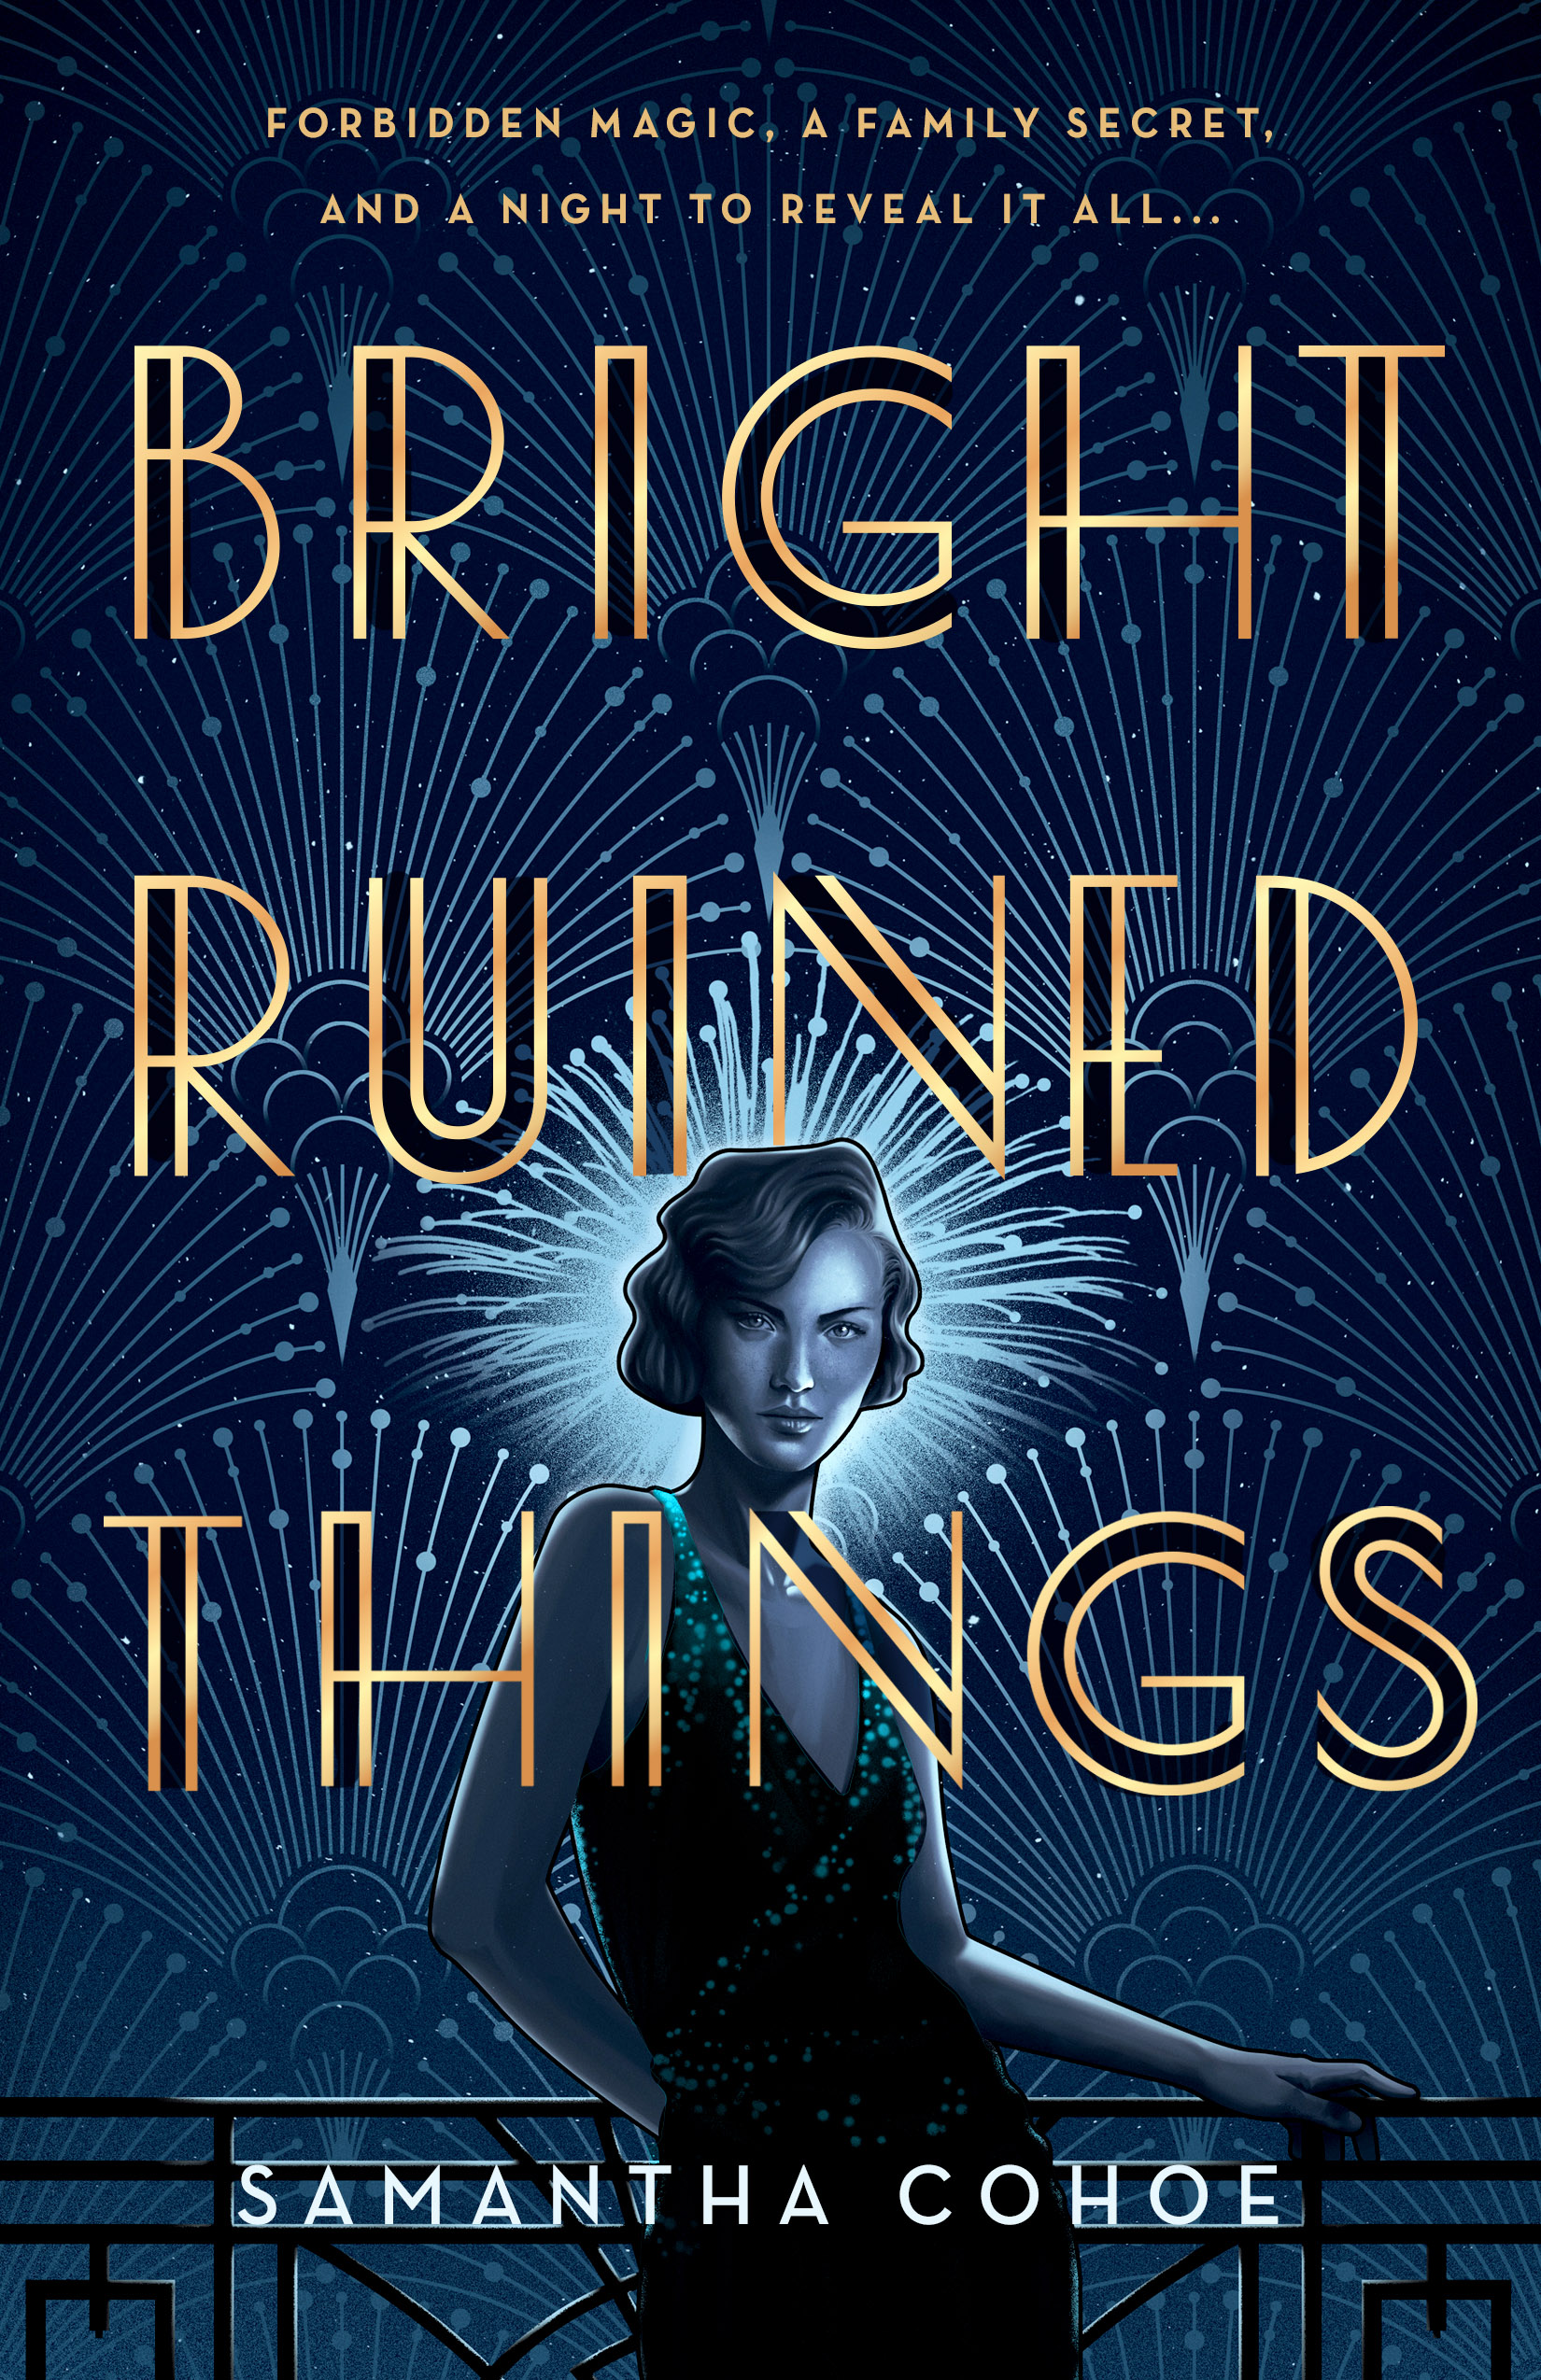 When Will Bright Ruined Things Come Out? Samantha Cohoe 2021 New Releases